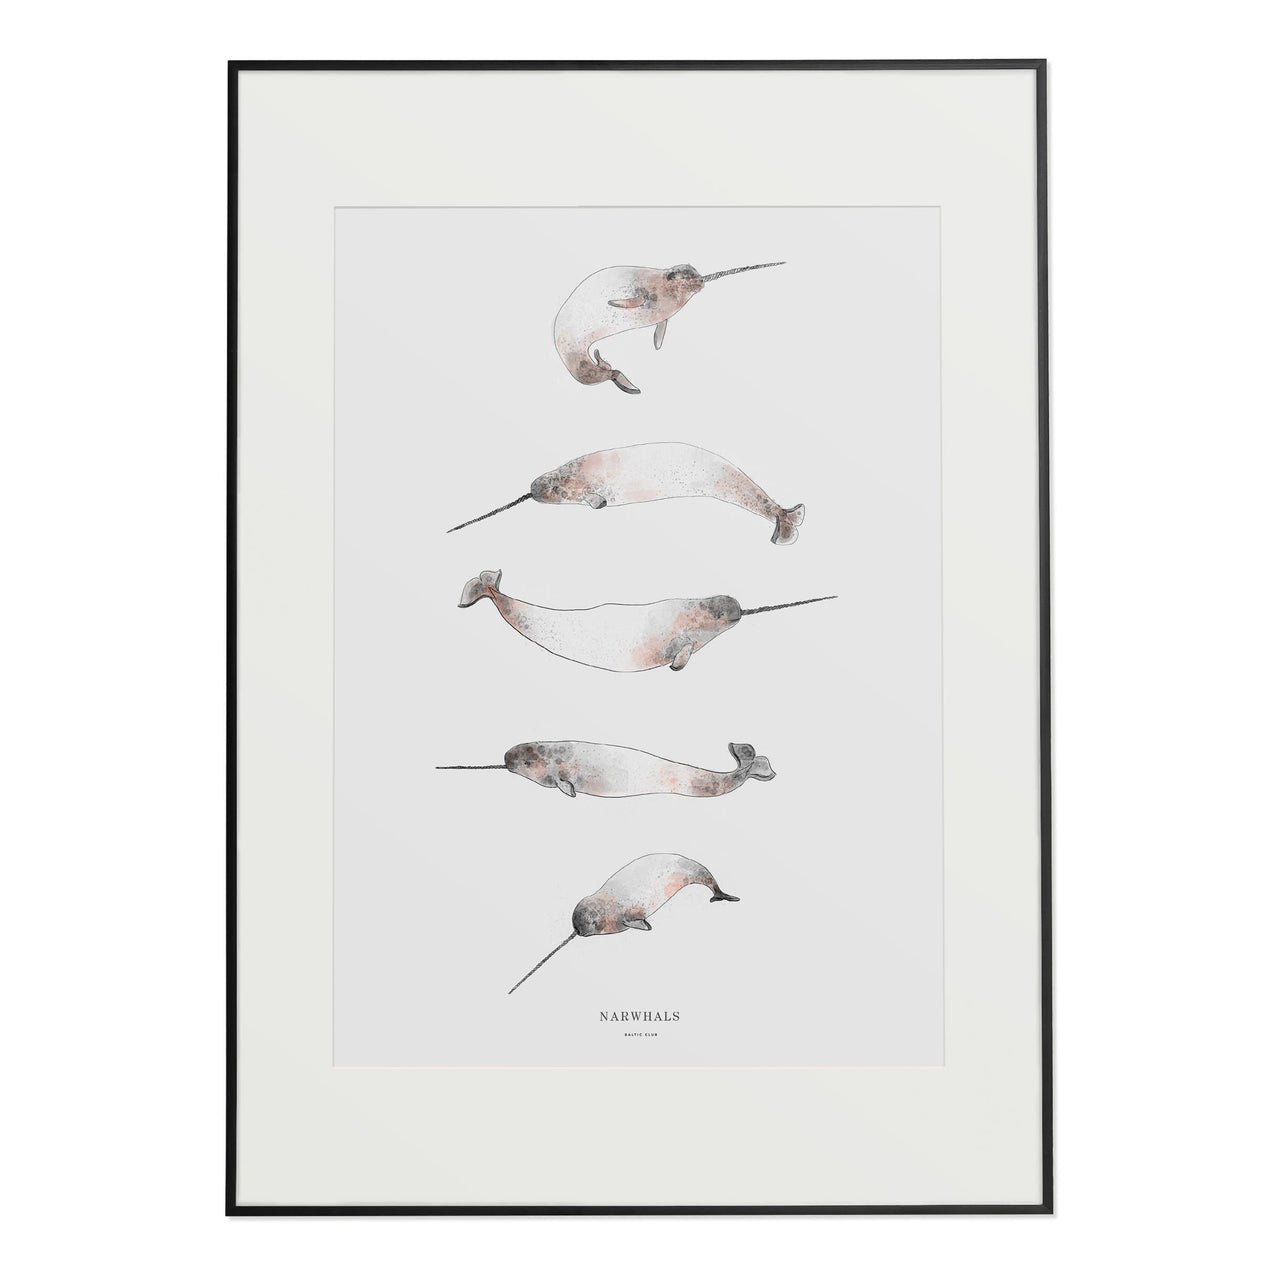 Baltic Club Photography & Prints Narwhals Art Print